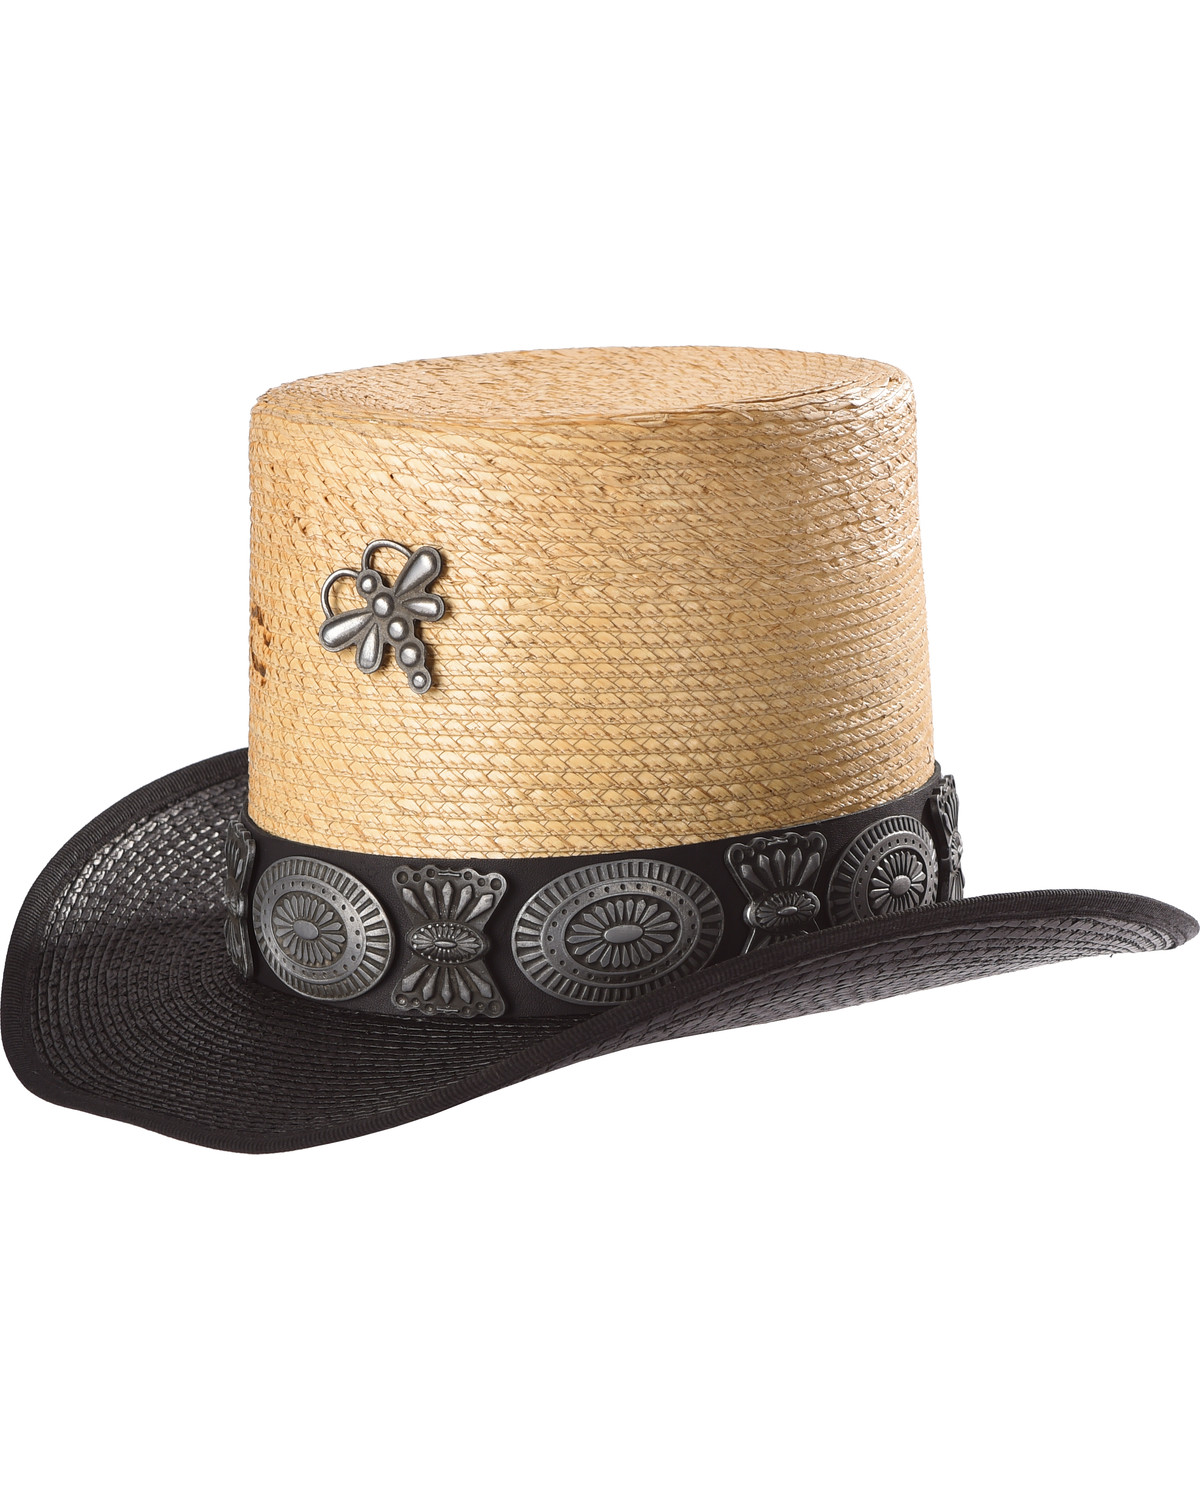 1a137a6b60fb1 Charlie 1 Horse Women s Cochella Valley Top Hat